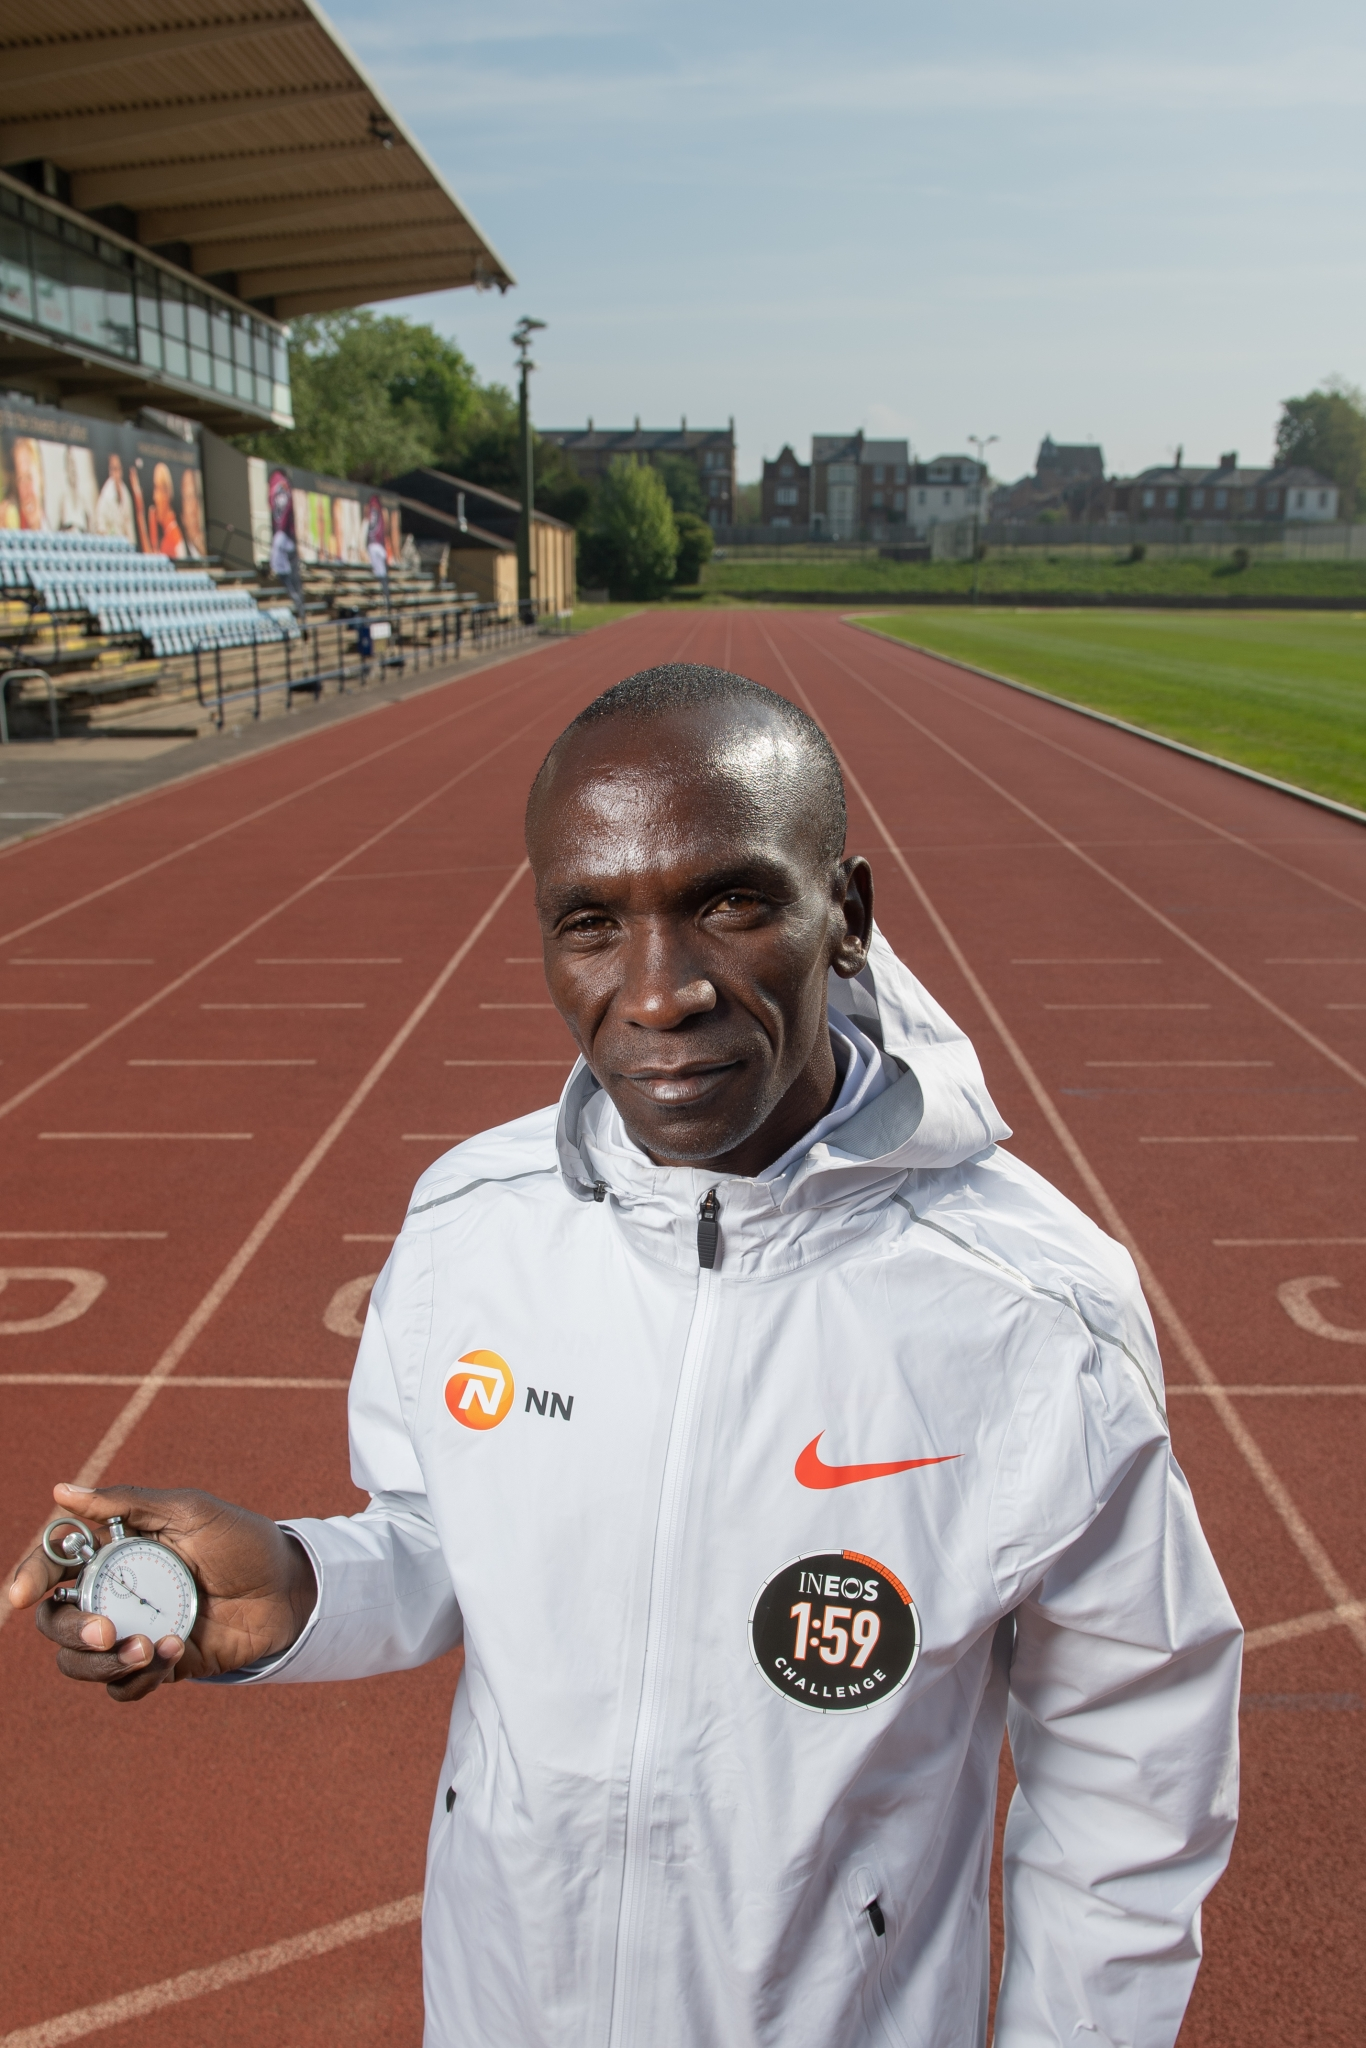 Eliud Kipchoge KEN, with the stopwatch used to time Roger Bannisters sub-4-minute mile at the Iffley road running track on the 30th April 2019. Photo: Thomas Lovelock for london marathon events